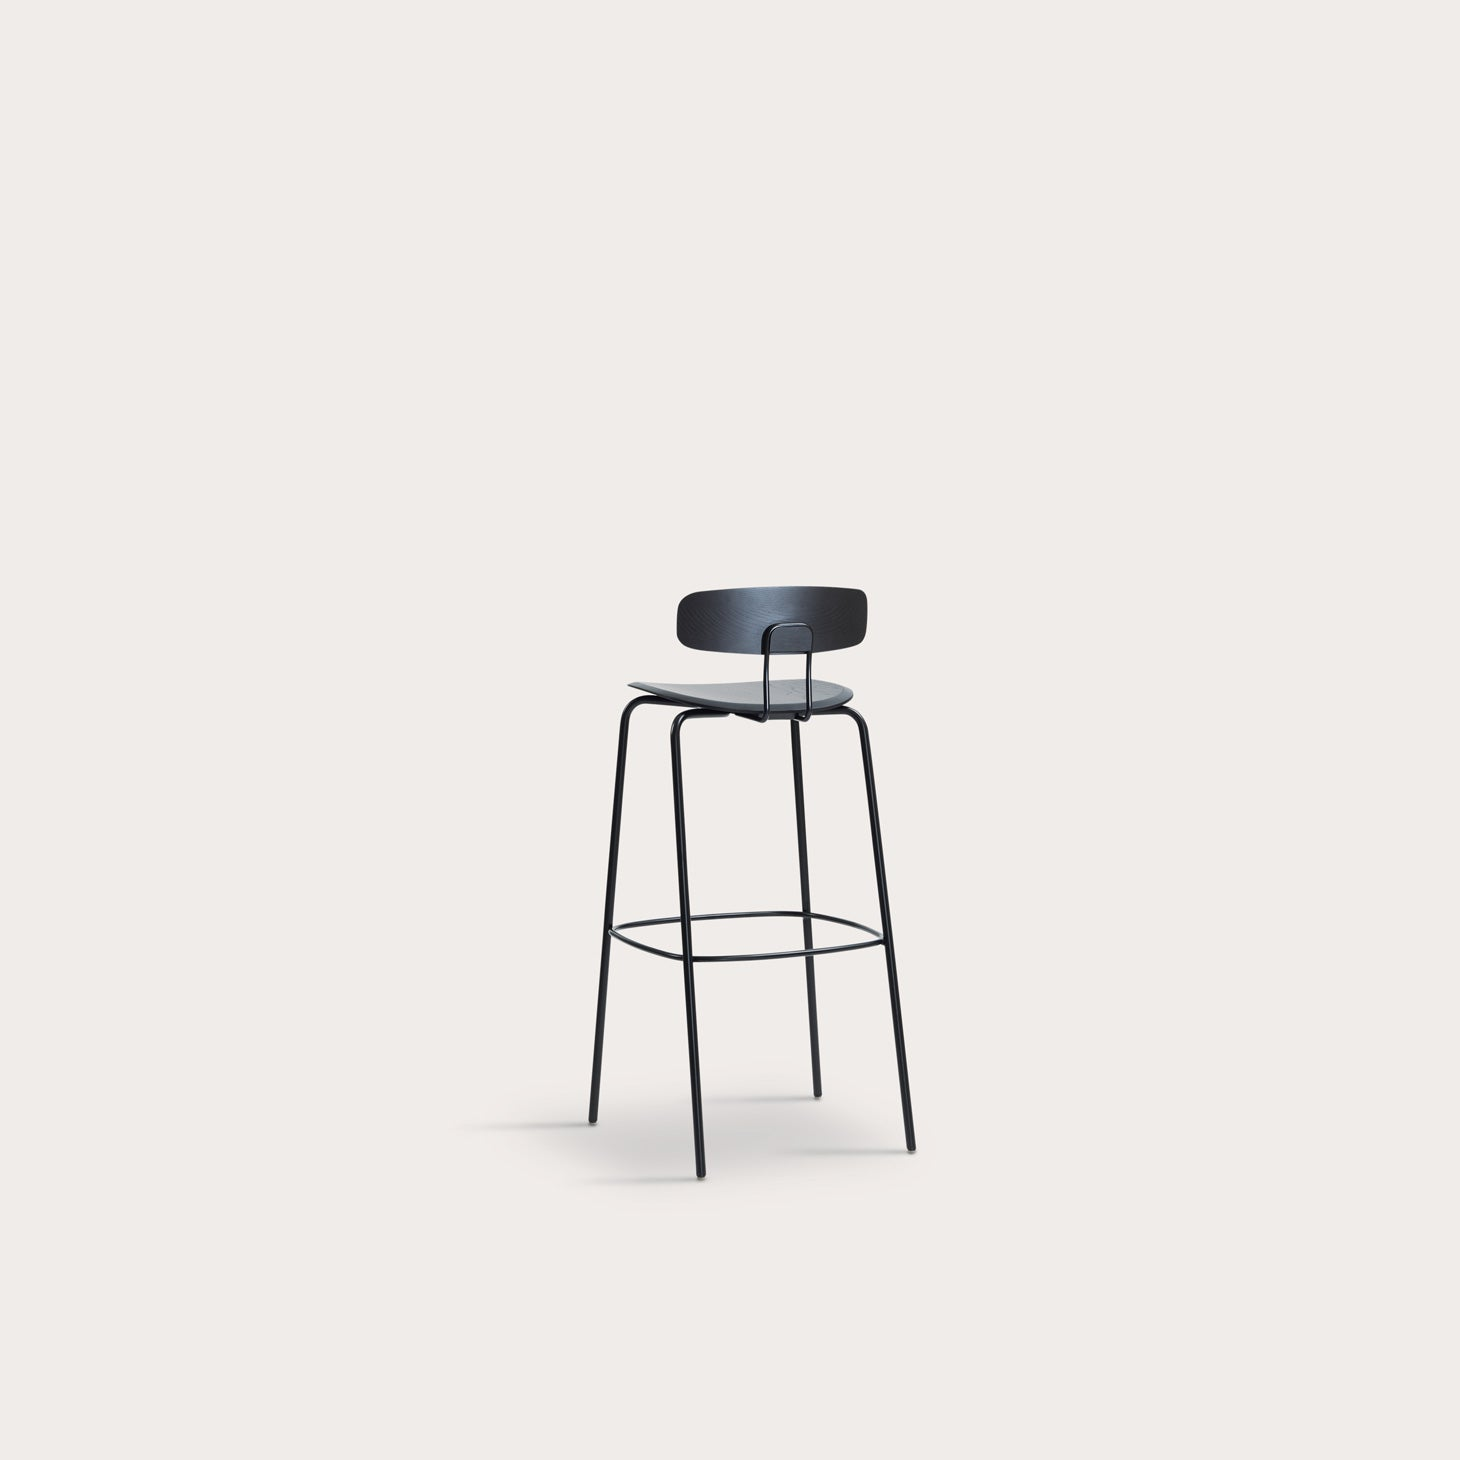 Okito Bar Stool Seating Laeufer & Keichel Designer Furniture Sku: 006-120-10122